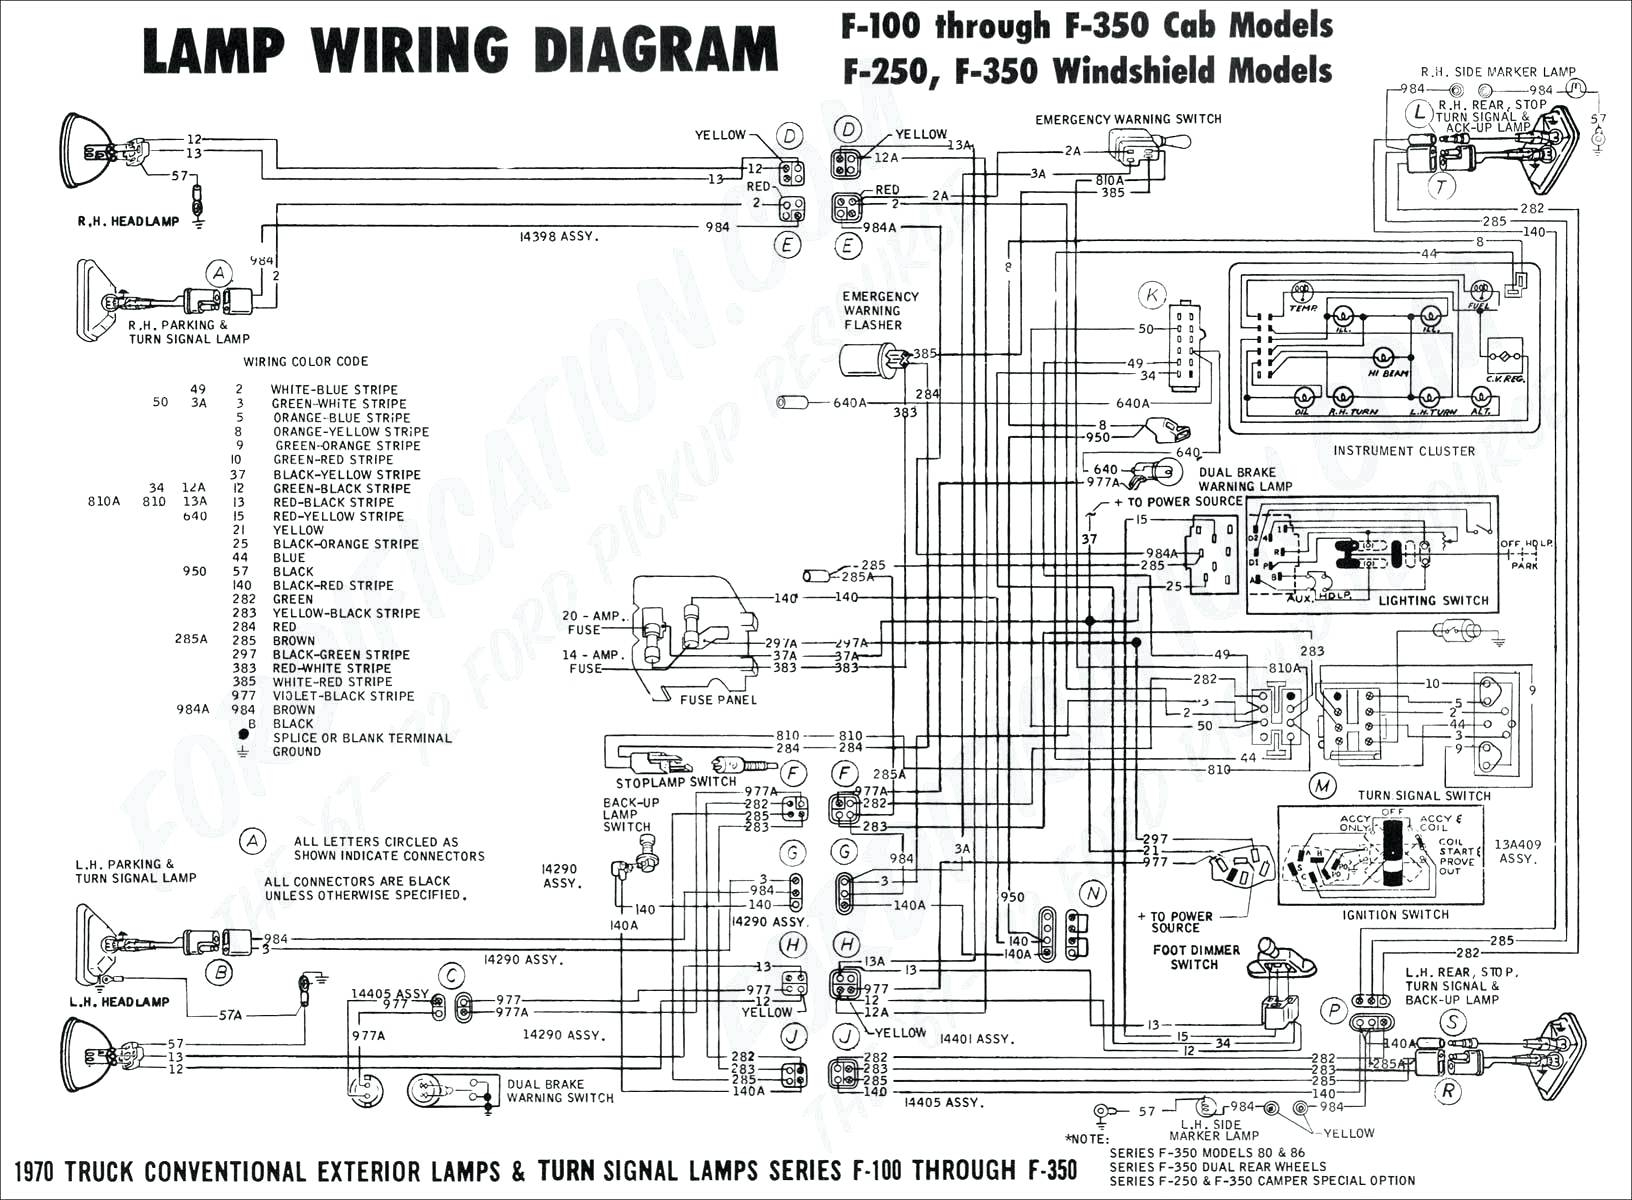 DIAGRAM] 1989 Dodge Ram Wiring Diagram FULL Version HD Quality Wiring  Diagram - 10BTWIRING.CONCESSIONARIABELOGISENIGALLIA.ITconcessionariabelogisenigallia.it